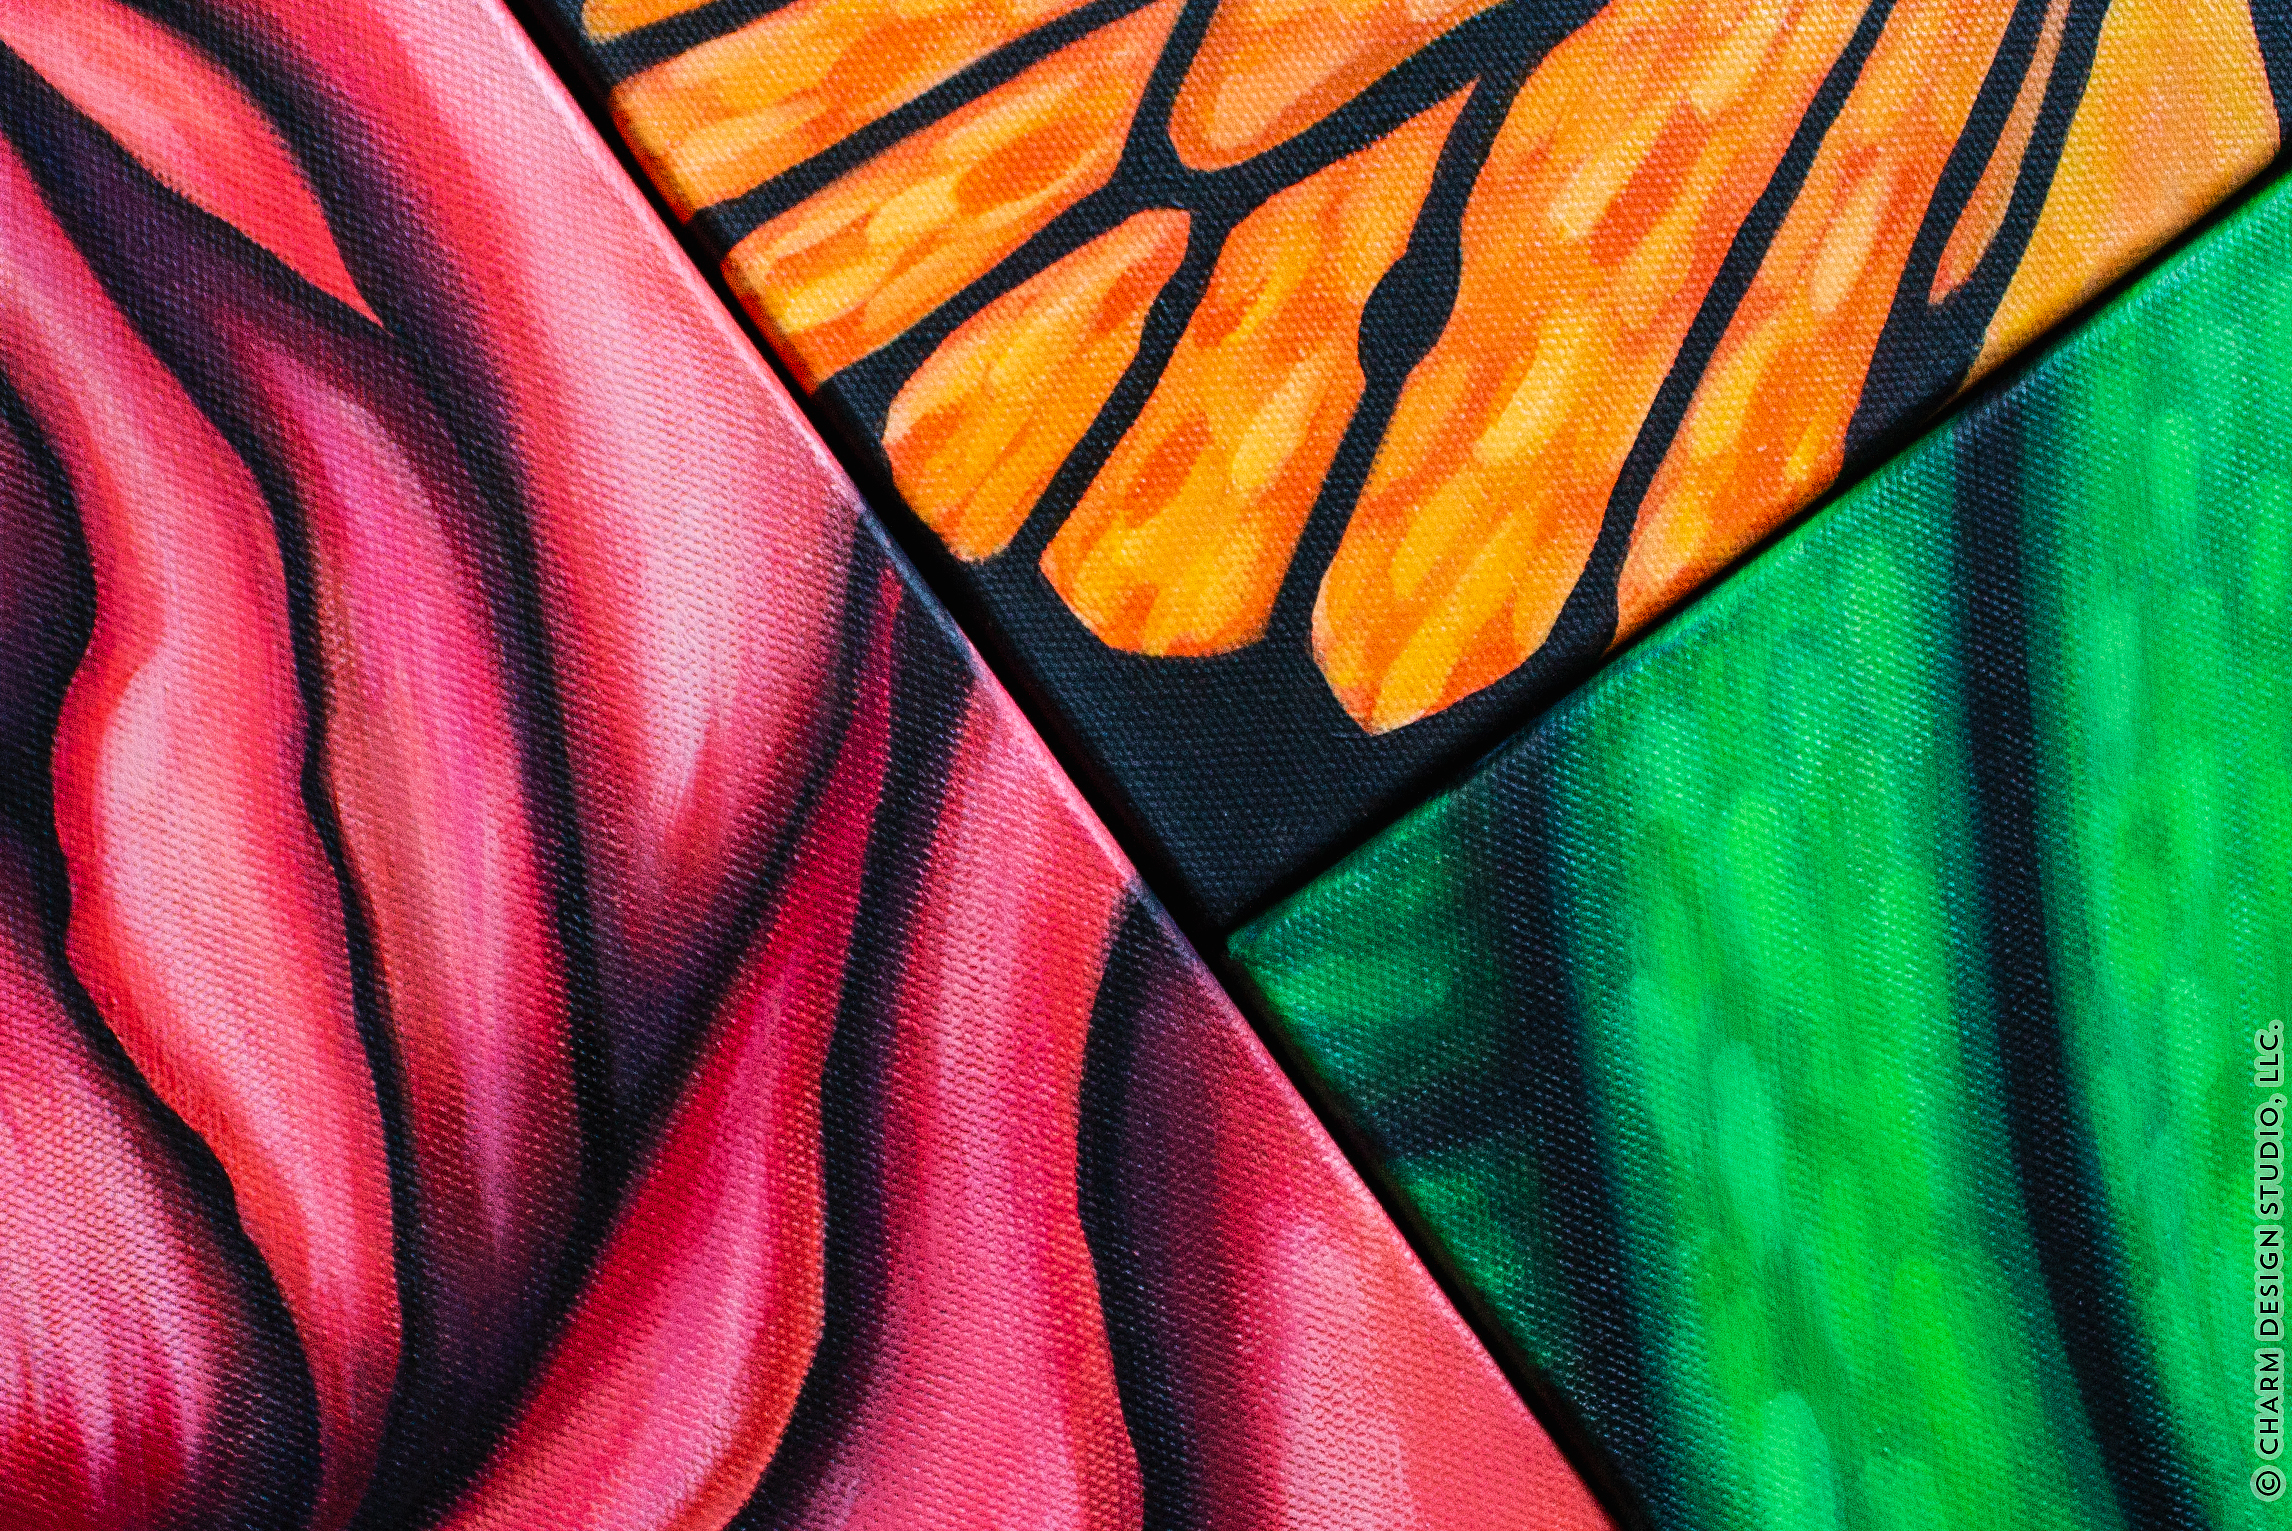 view of finished acrylic paintings of a rose, butterfly, and leaf on canvas | image © Charm Design Studio, LLC.